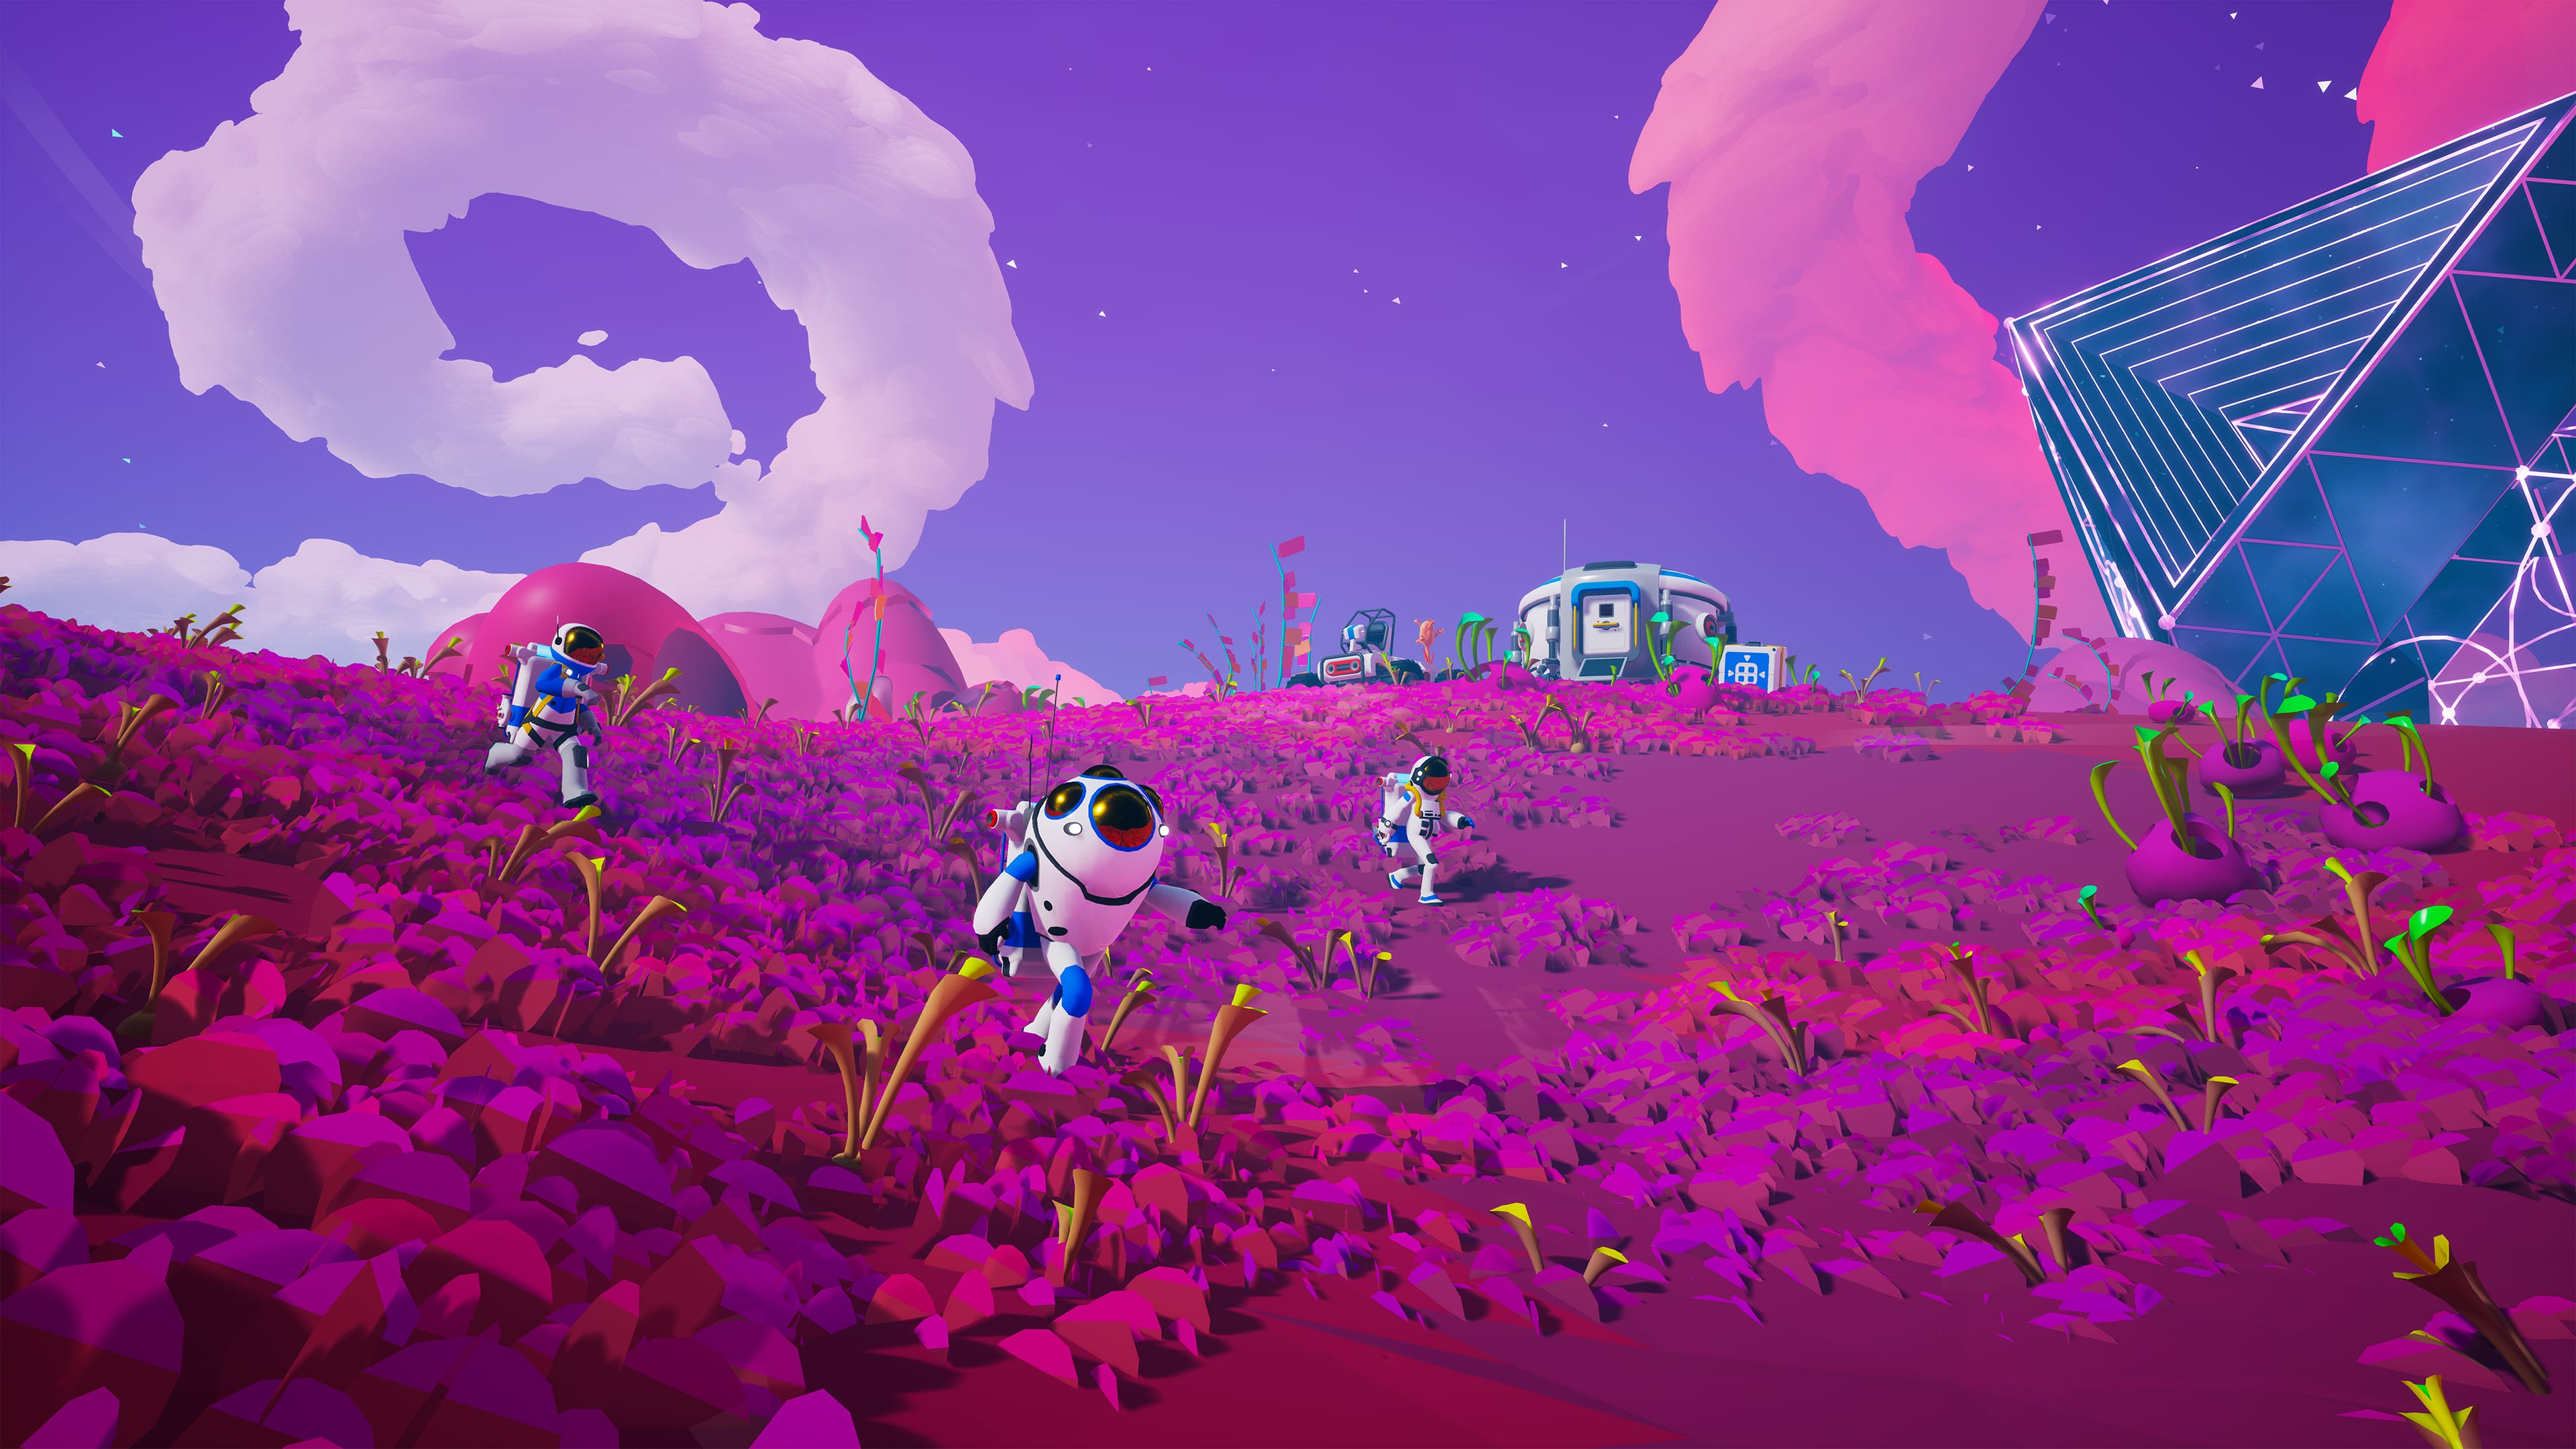 Astroneer 1 0 Touches Down on Steam, Xbox One - IndianNoob